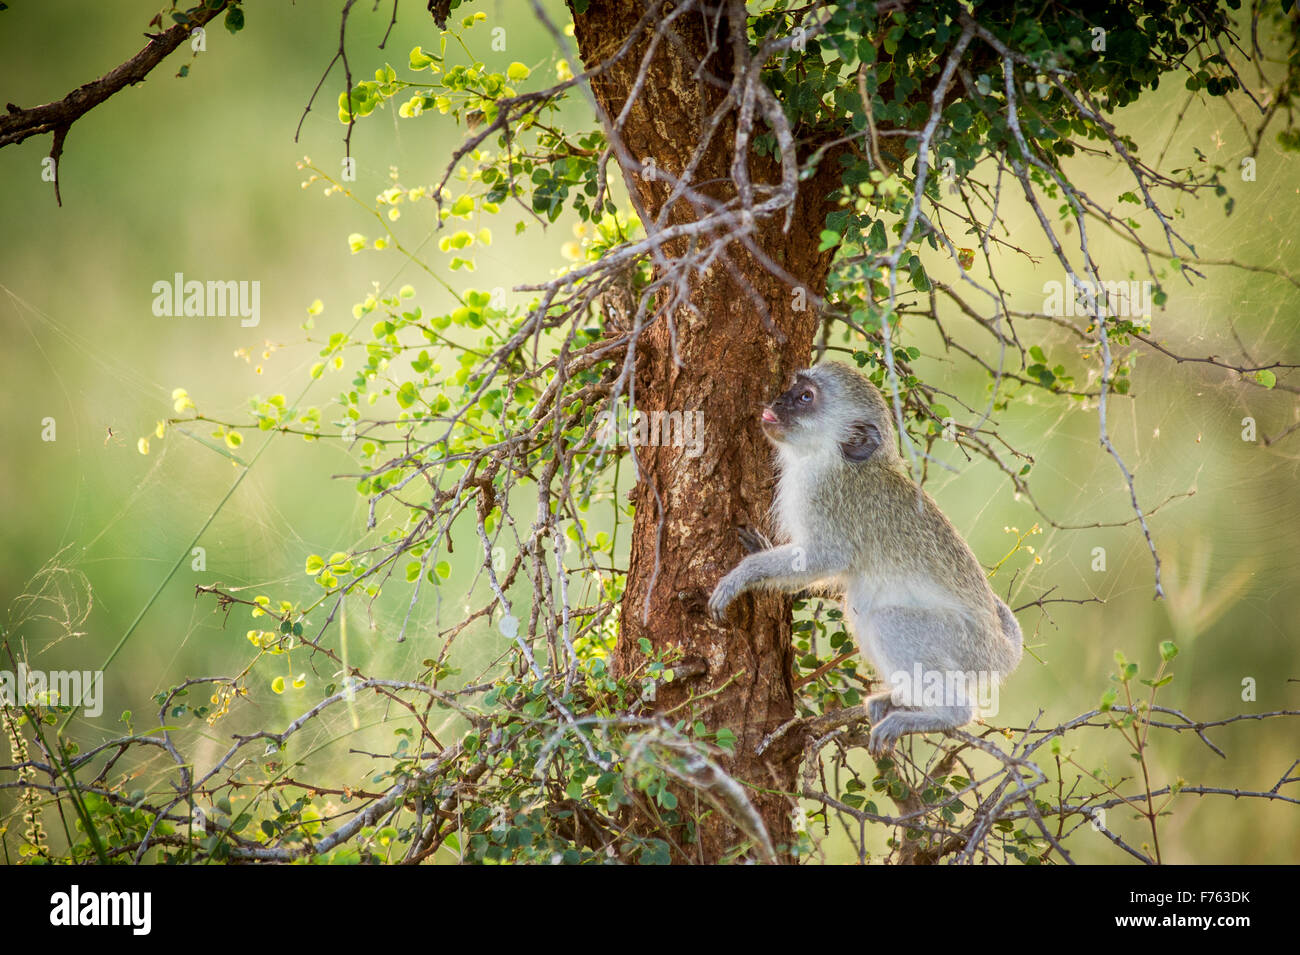 Sud Africa - Parco Nazionale Kruger Vervet Monkey (Chlorocebus pygerythrus) Immagini Stock